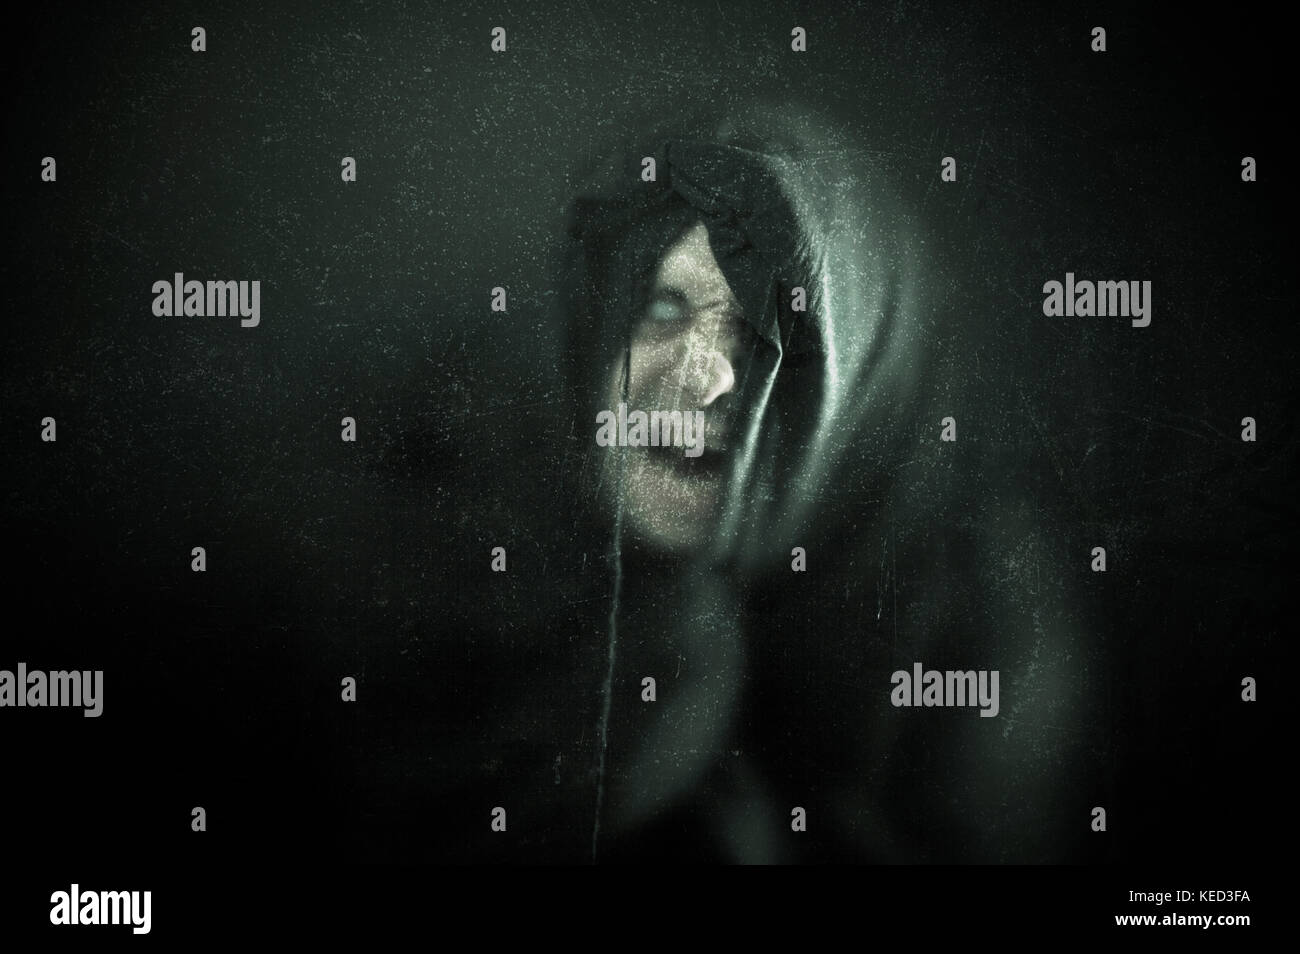 Angry ghost figure in the dark - Stock Image